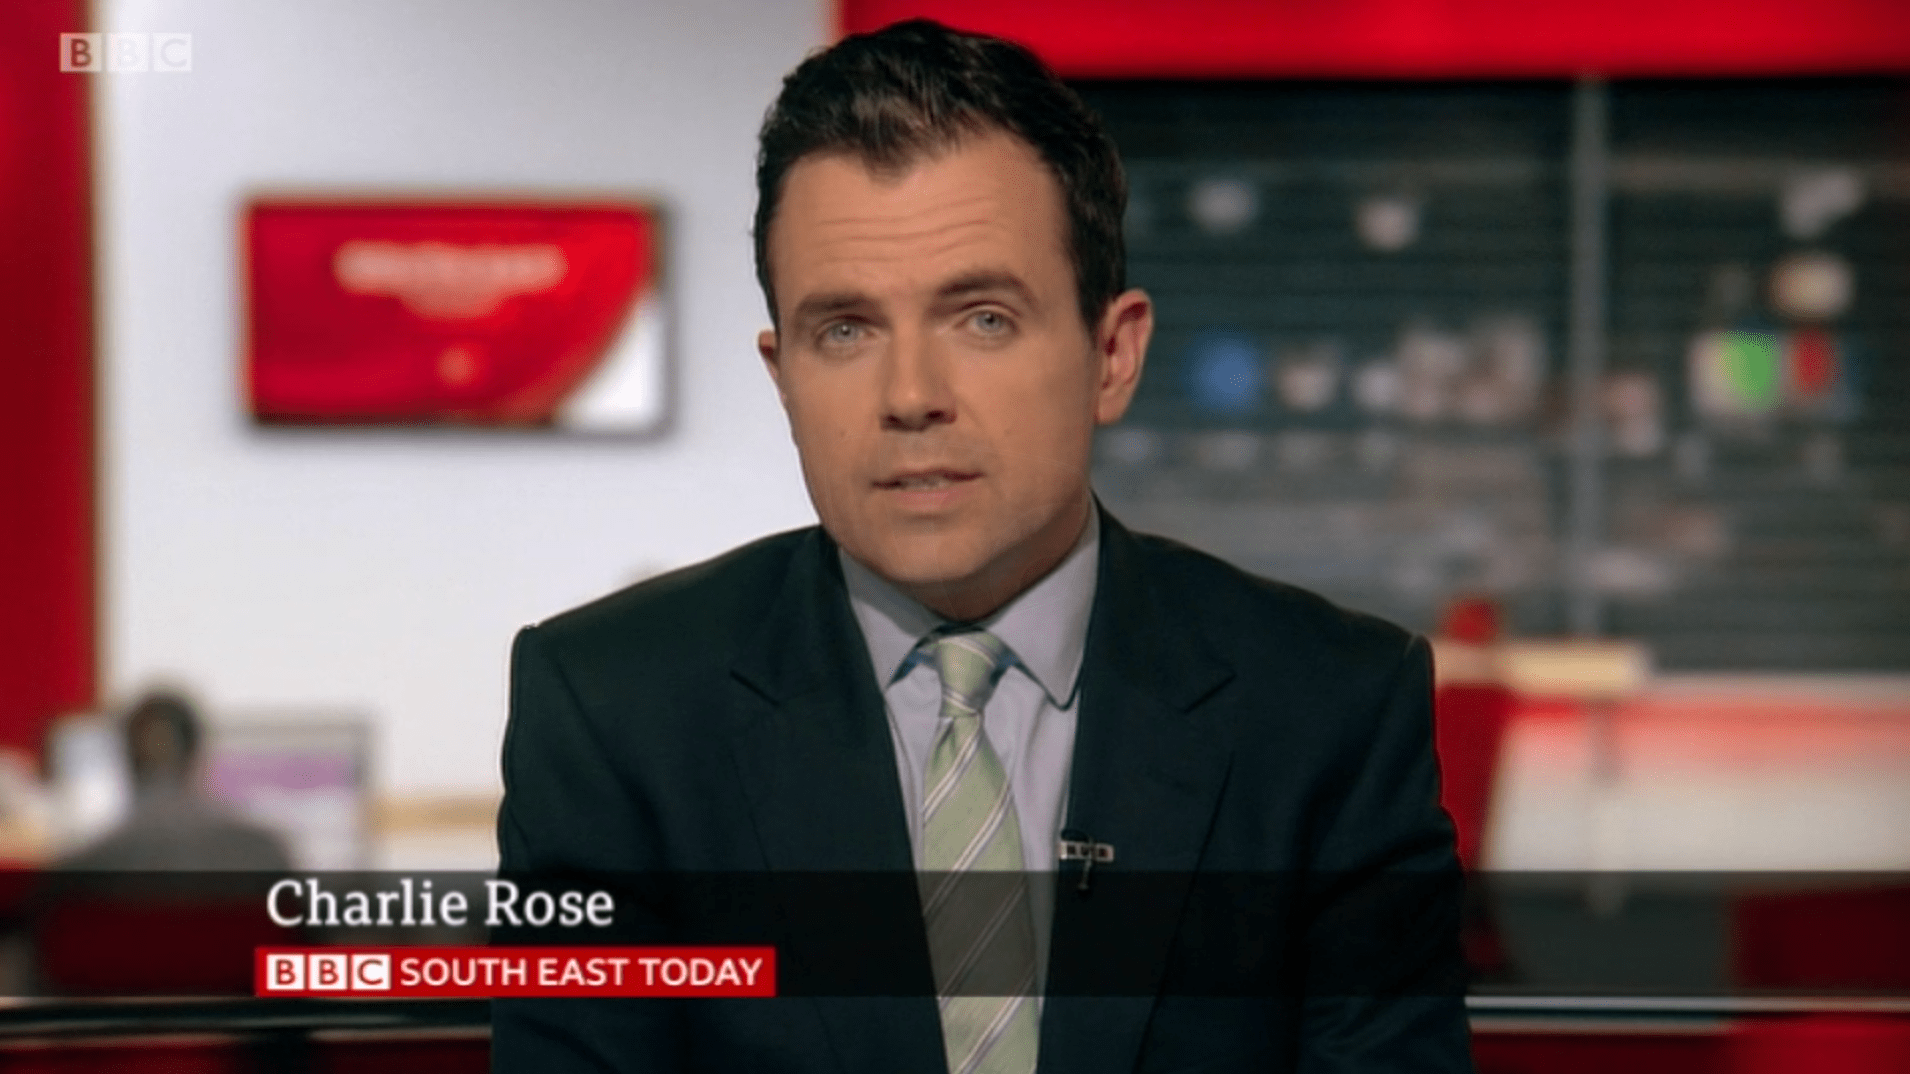 PICTURED: BBC South East Today studio presentation and lower-third. Presenter: Charlie Rose.